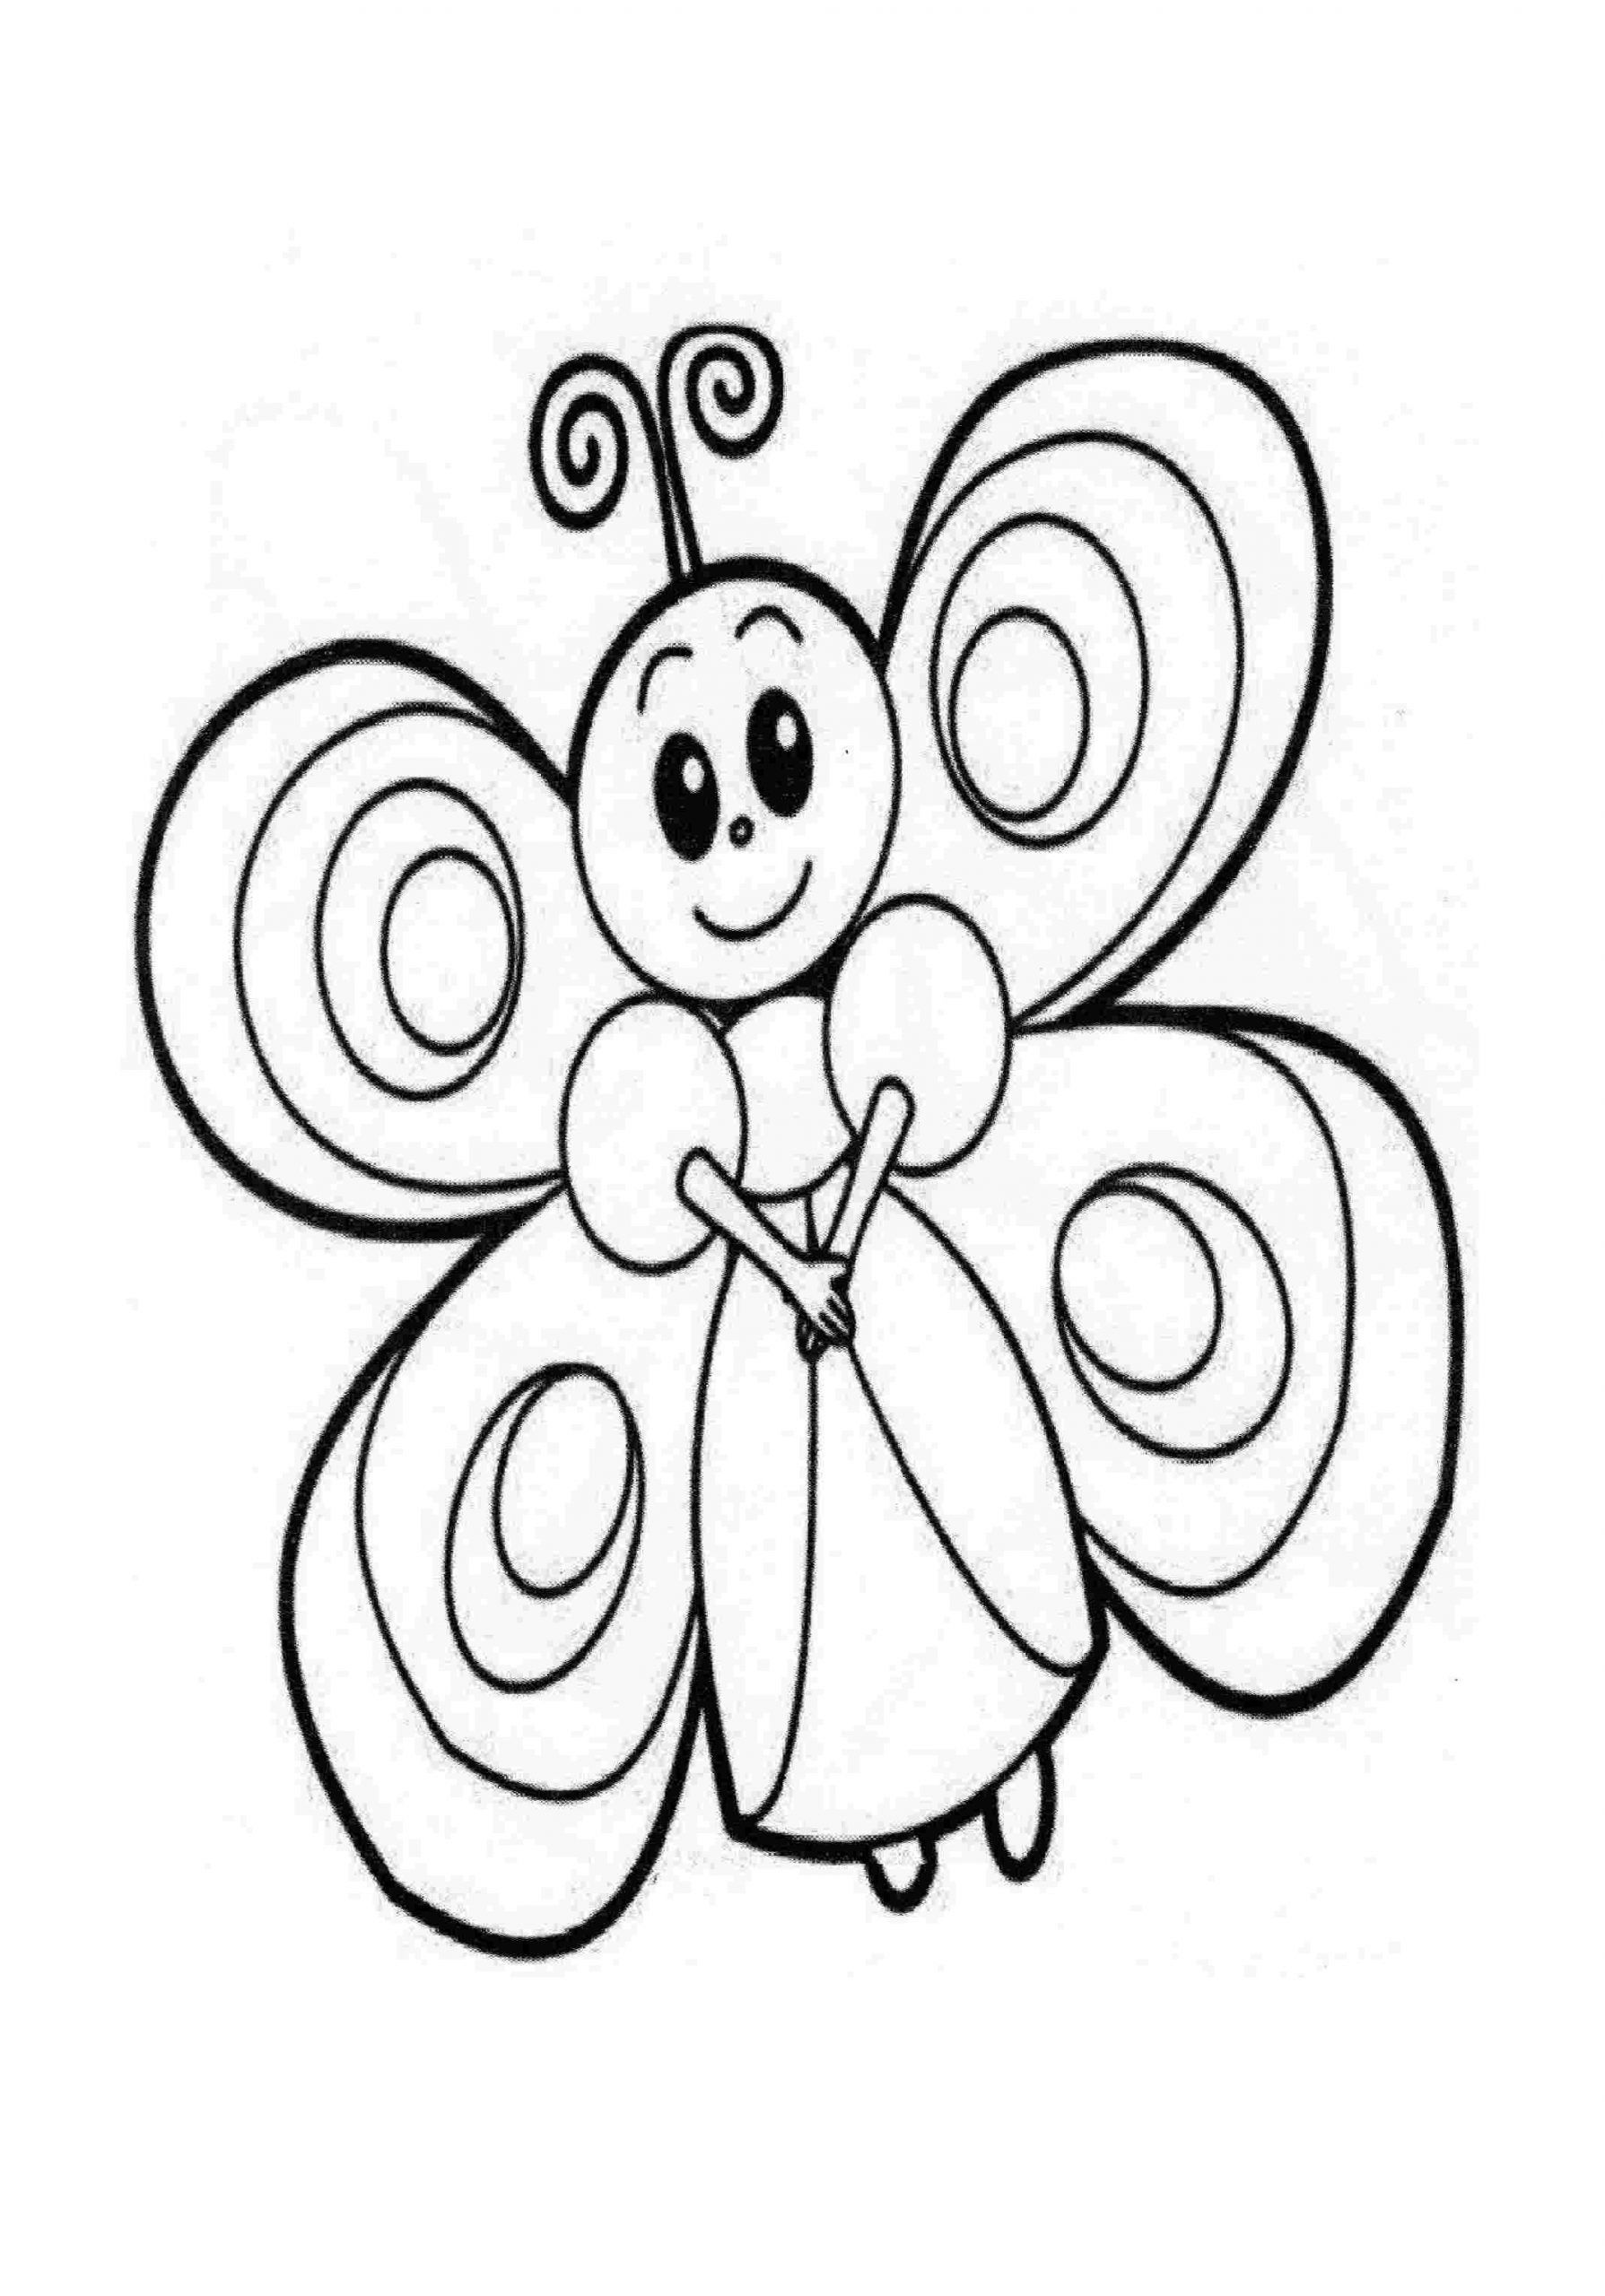 Coloring Page Of Butterfly Youngandtae Com In 2020 Butterfly Coloring Page Coloring Pages Flower Coloring Pages